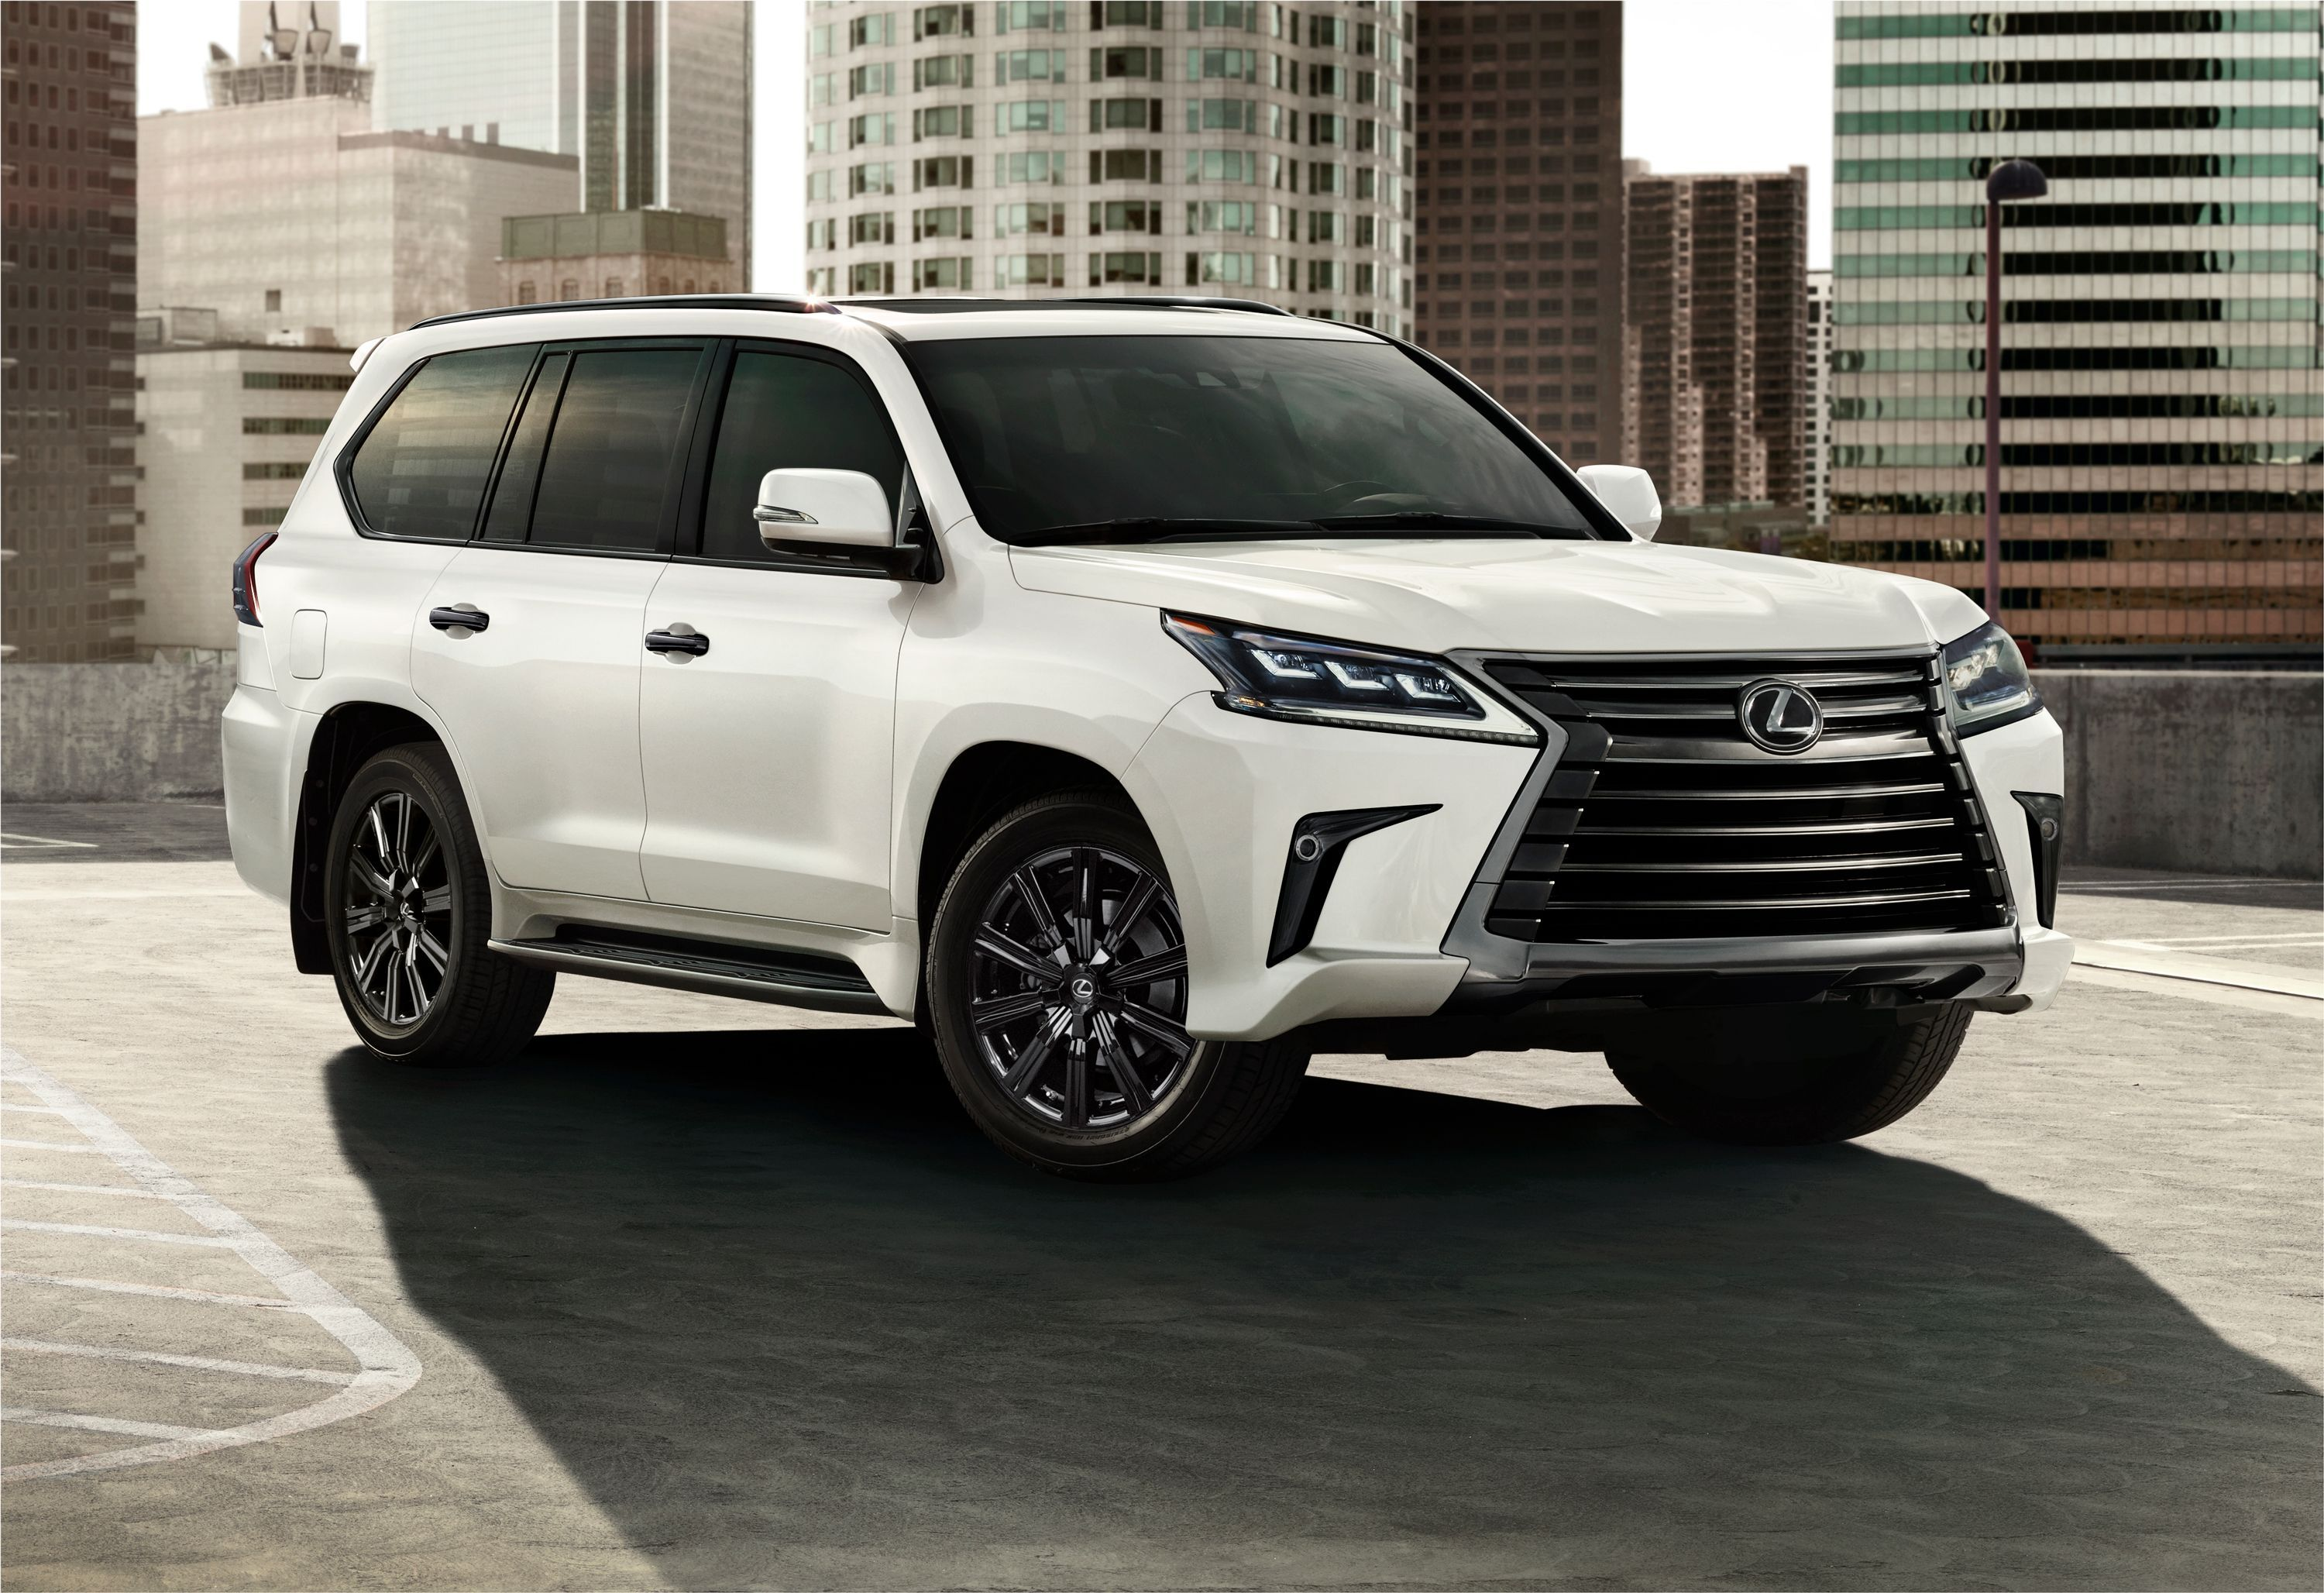 2021 Lexus LX Review, Pricing, and Specs